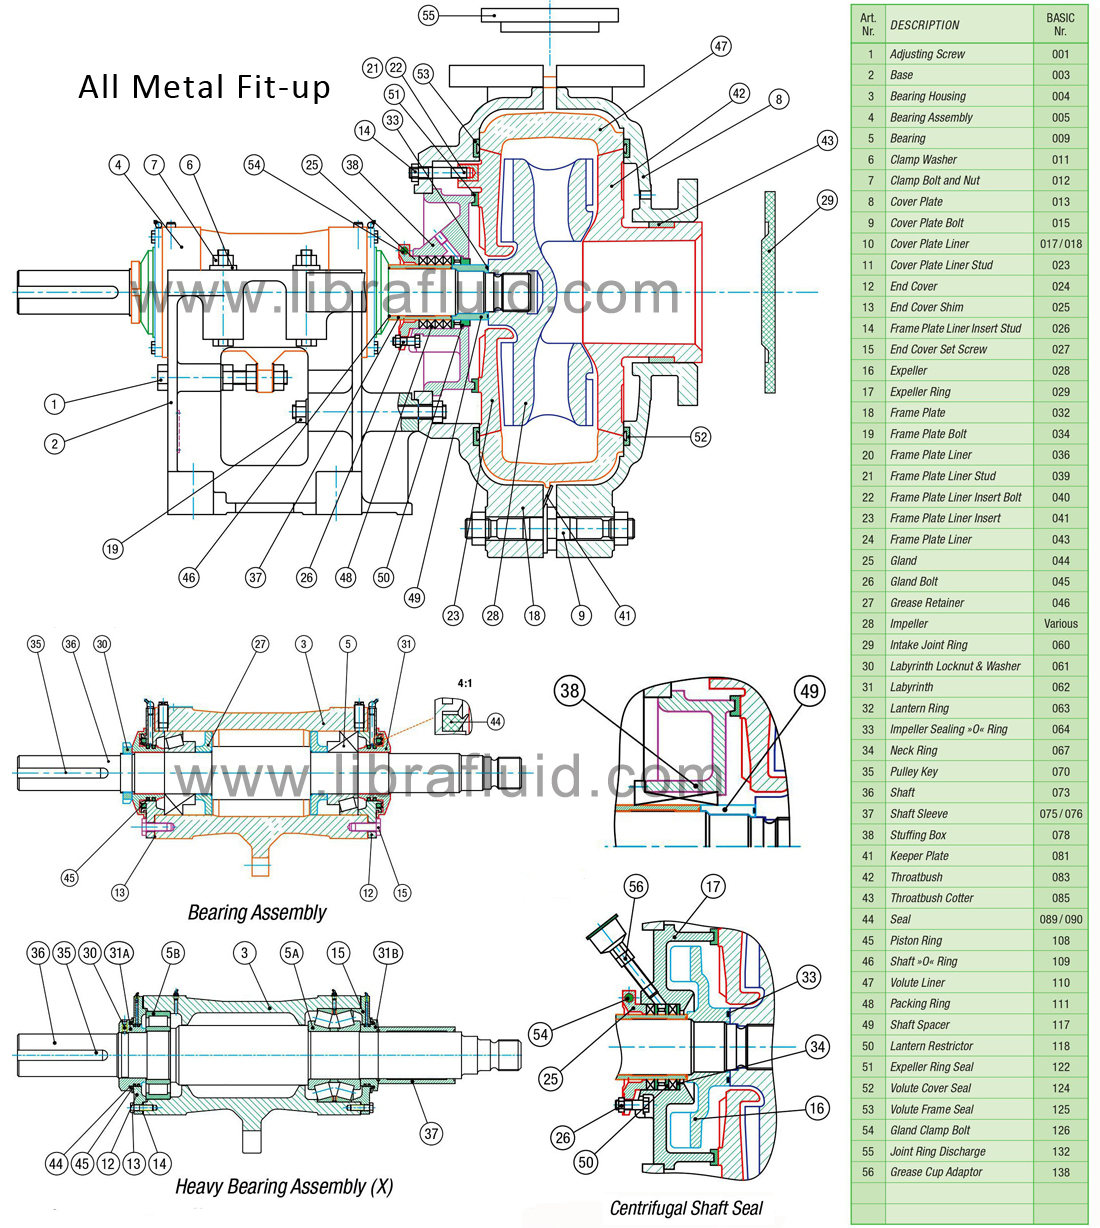 High chrome slurry pump assembly drawing